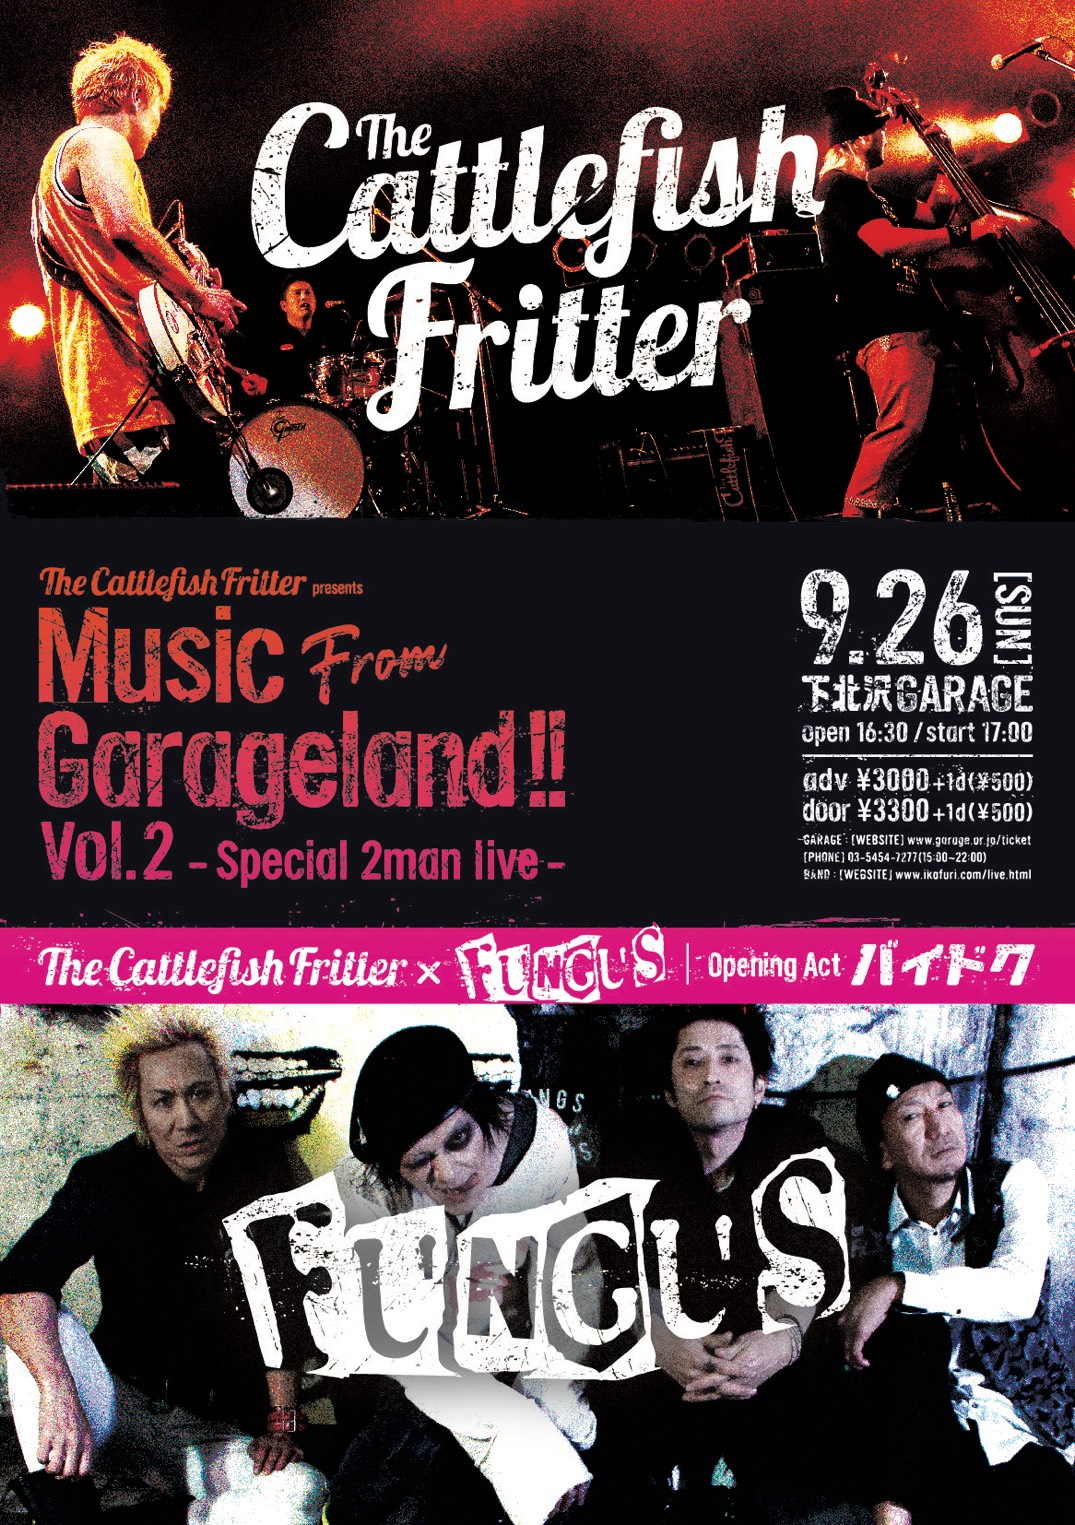 THE CATTLEFISH FRITTER presents  『Music from Garageland!! vol.2』  special 2man live  THE CATTLEFISH FRITTER vs FUNGUS